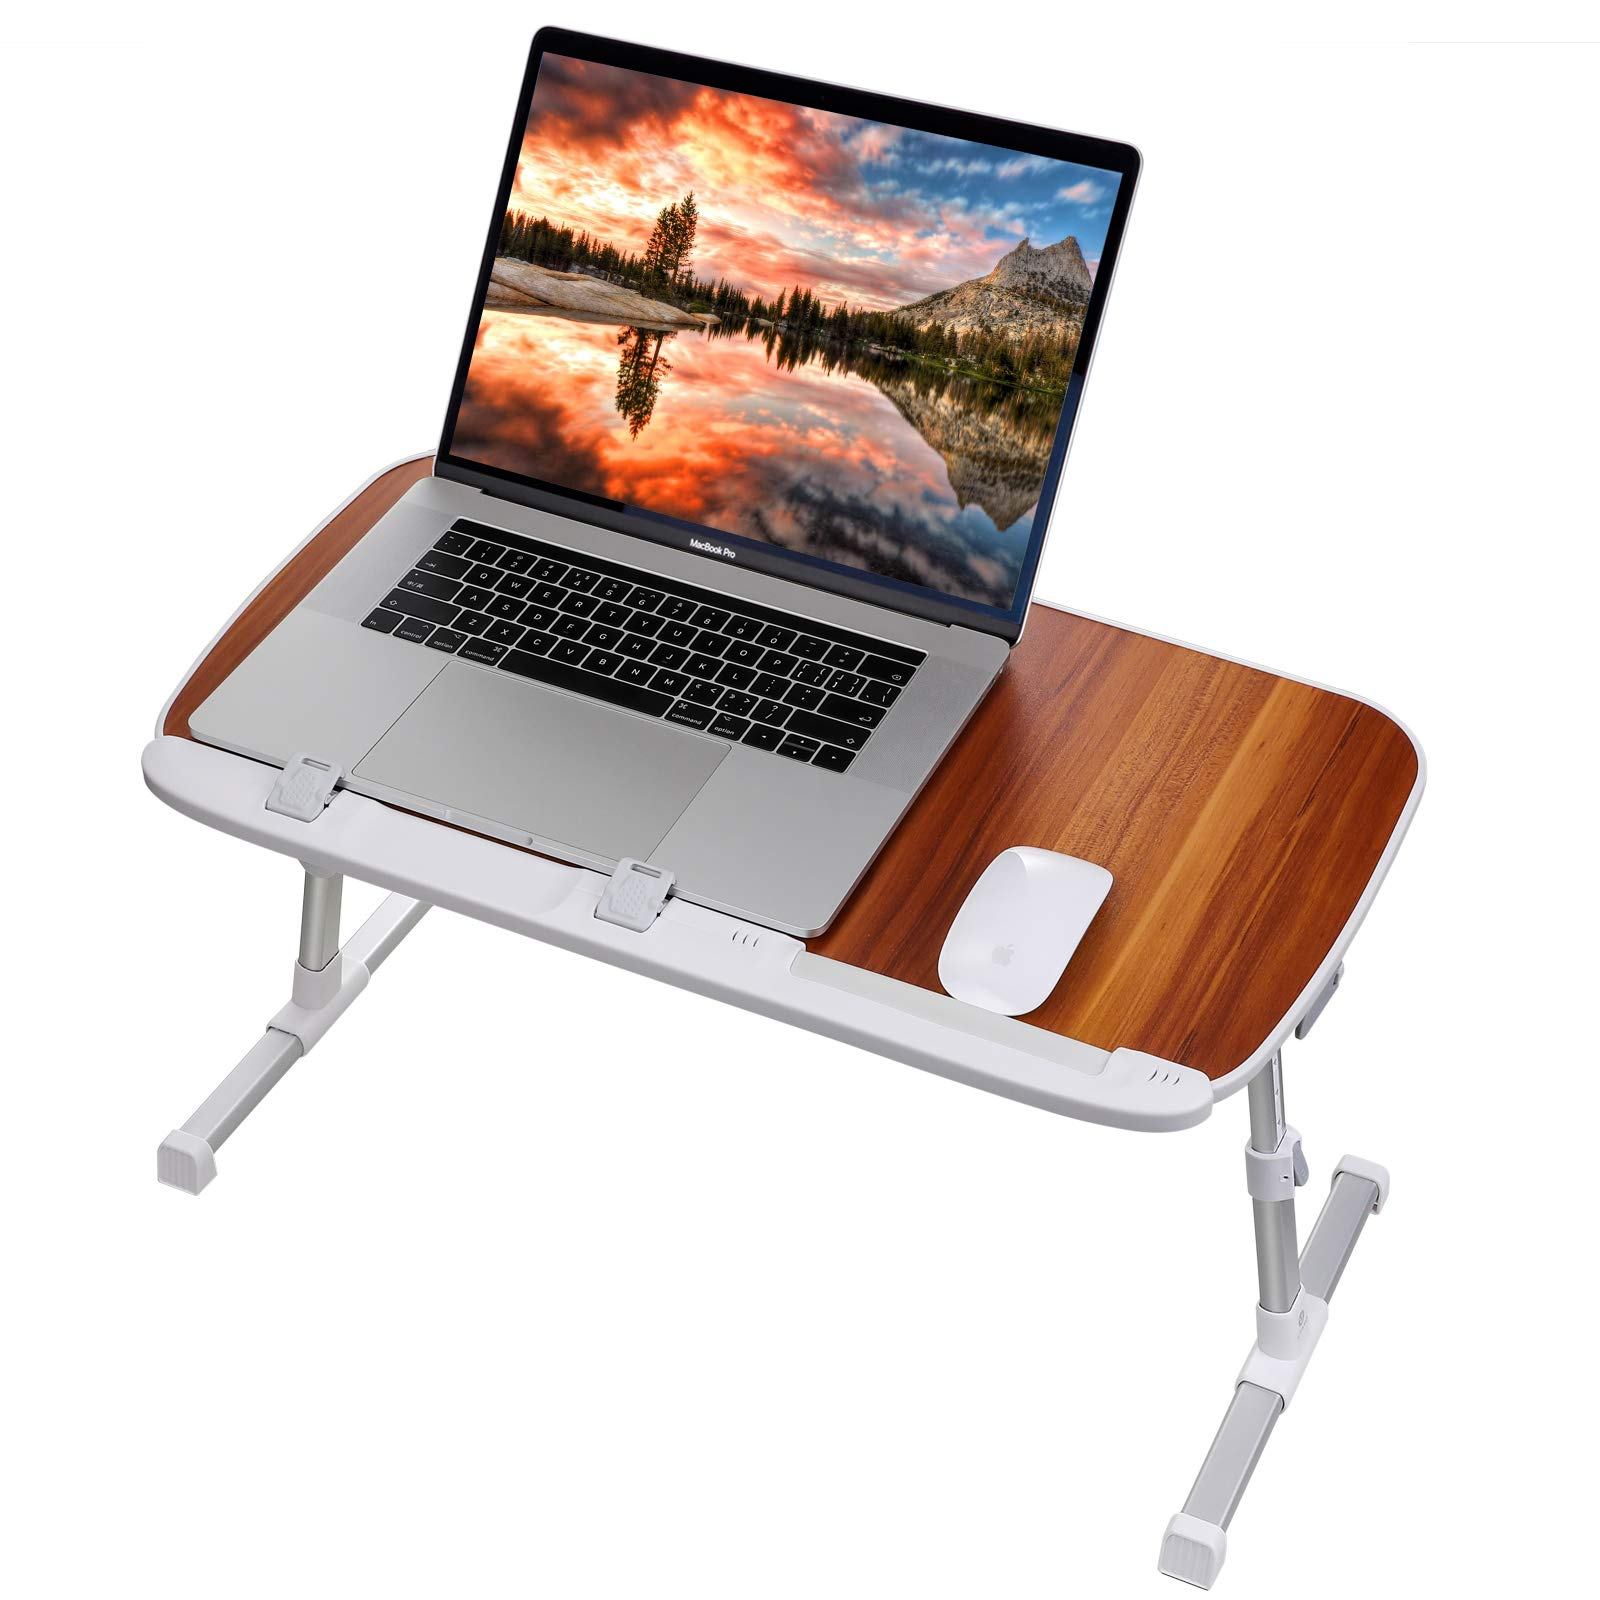 Laptop Table for Bed, Utaxo Laptop Computer Stand, Laptop Bed Desk, Bed Laptop Tray, Angle and Height Adjustable Laptop Notebook Holder